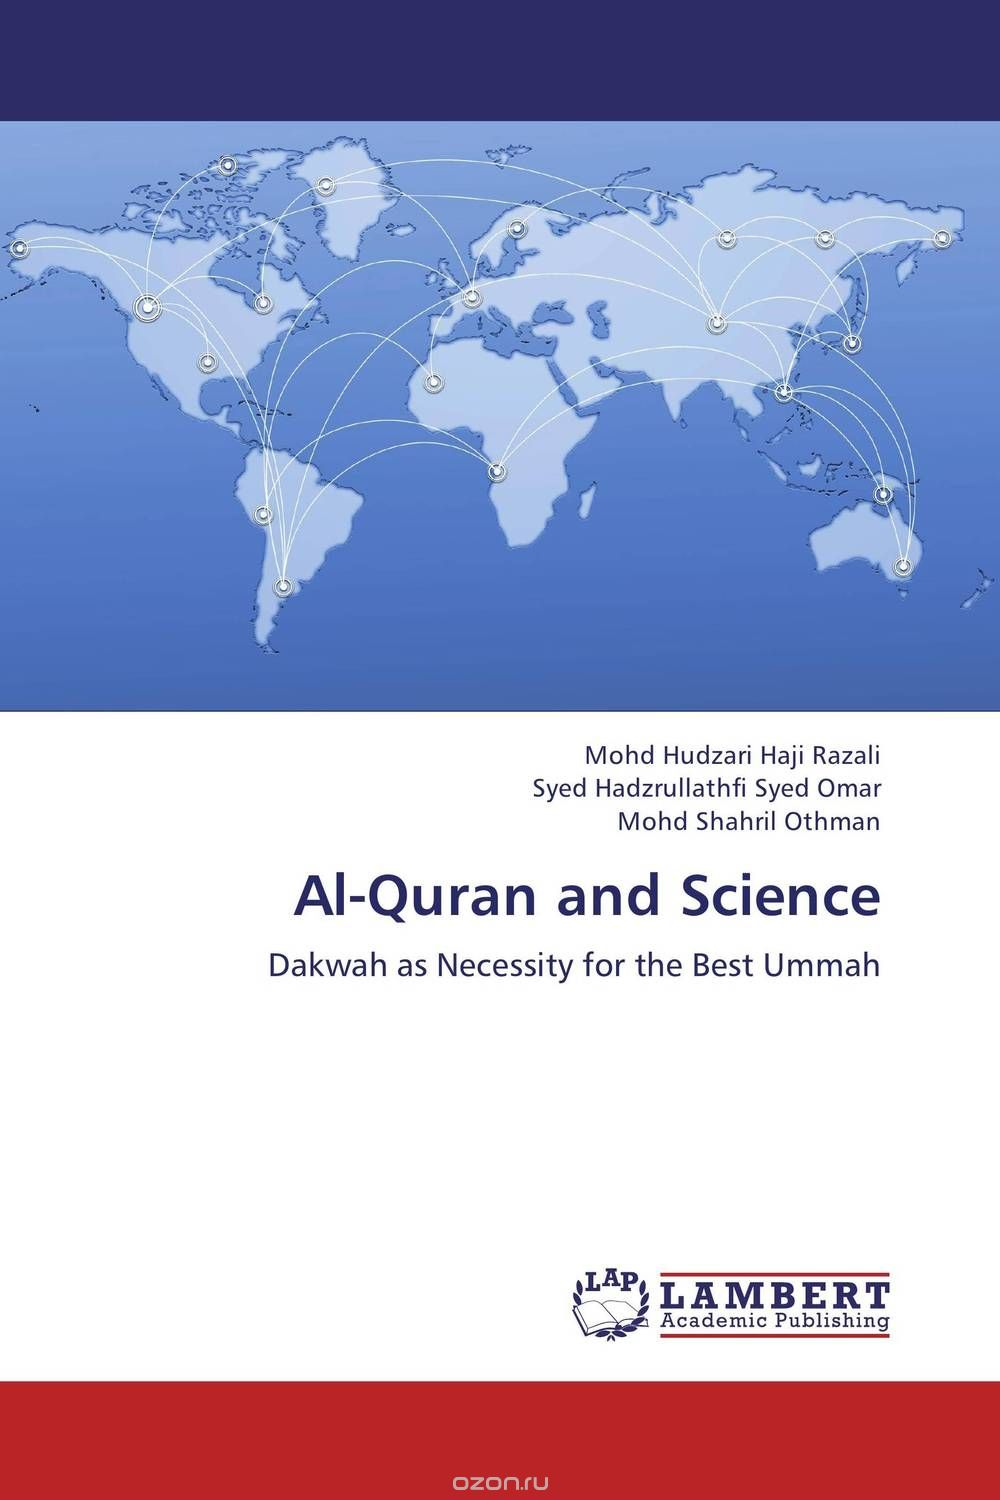 Al-Quran and Science